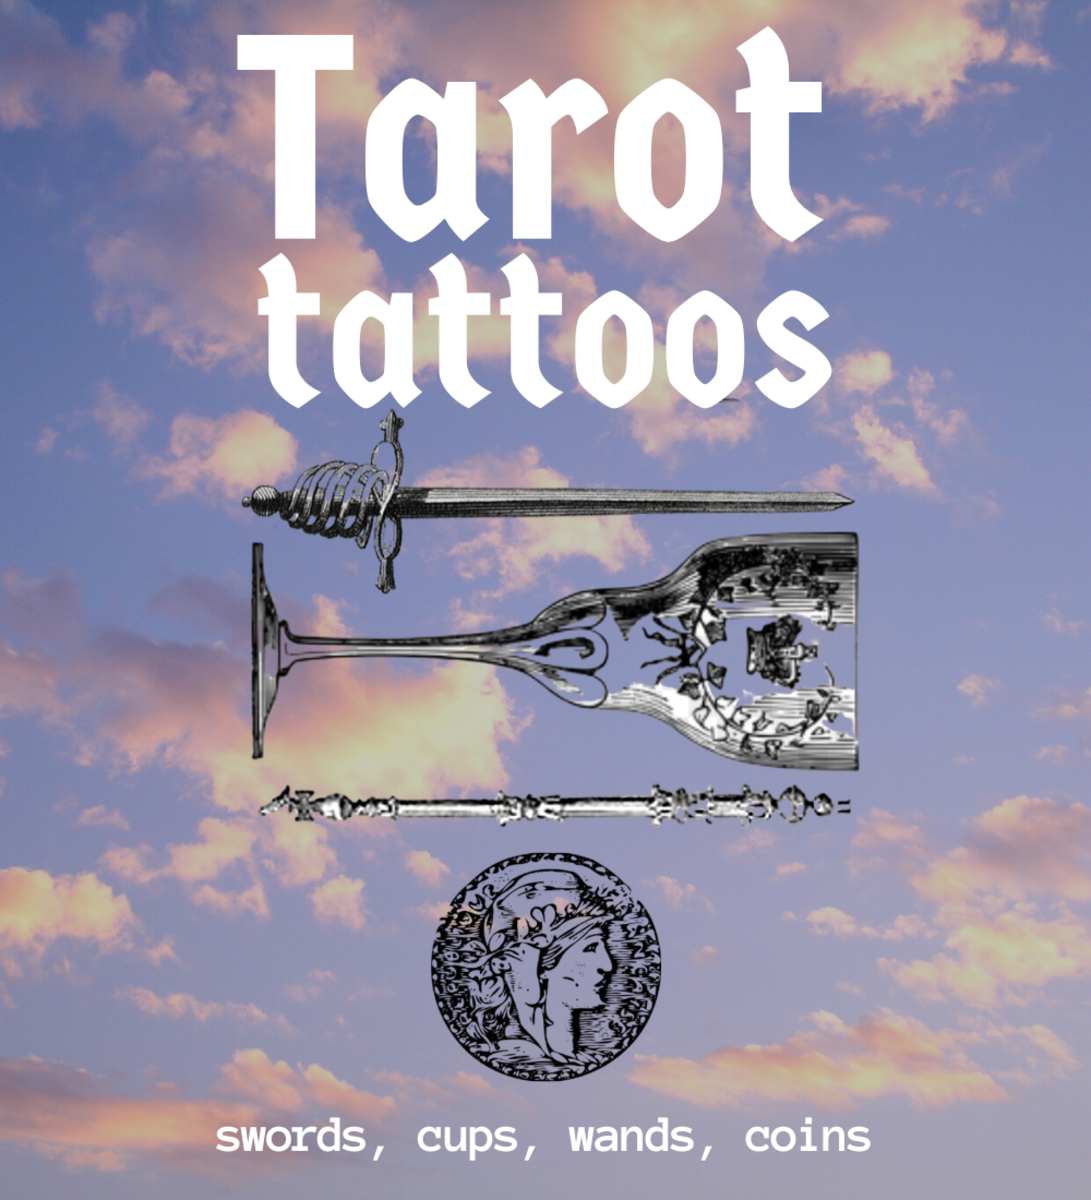 Tarot Tattoo Design Ideas and Meanings: The Minor Arcana (Suit Cards: Swords, Cups, Wands, and Coins)